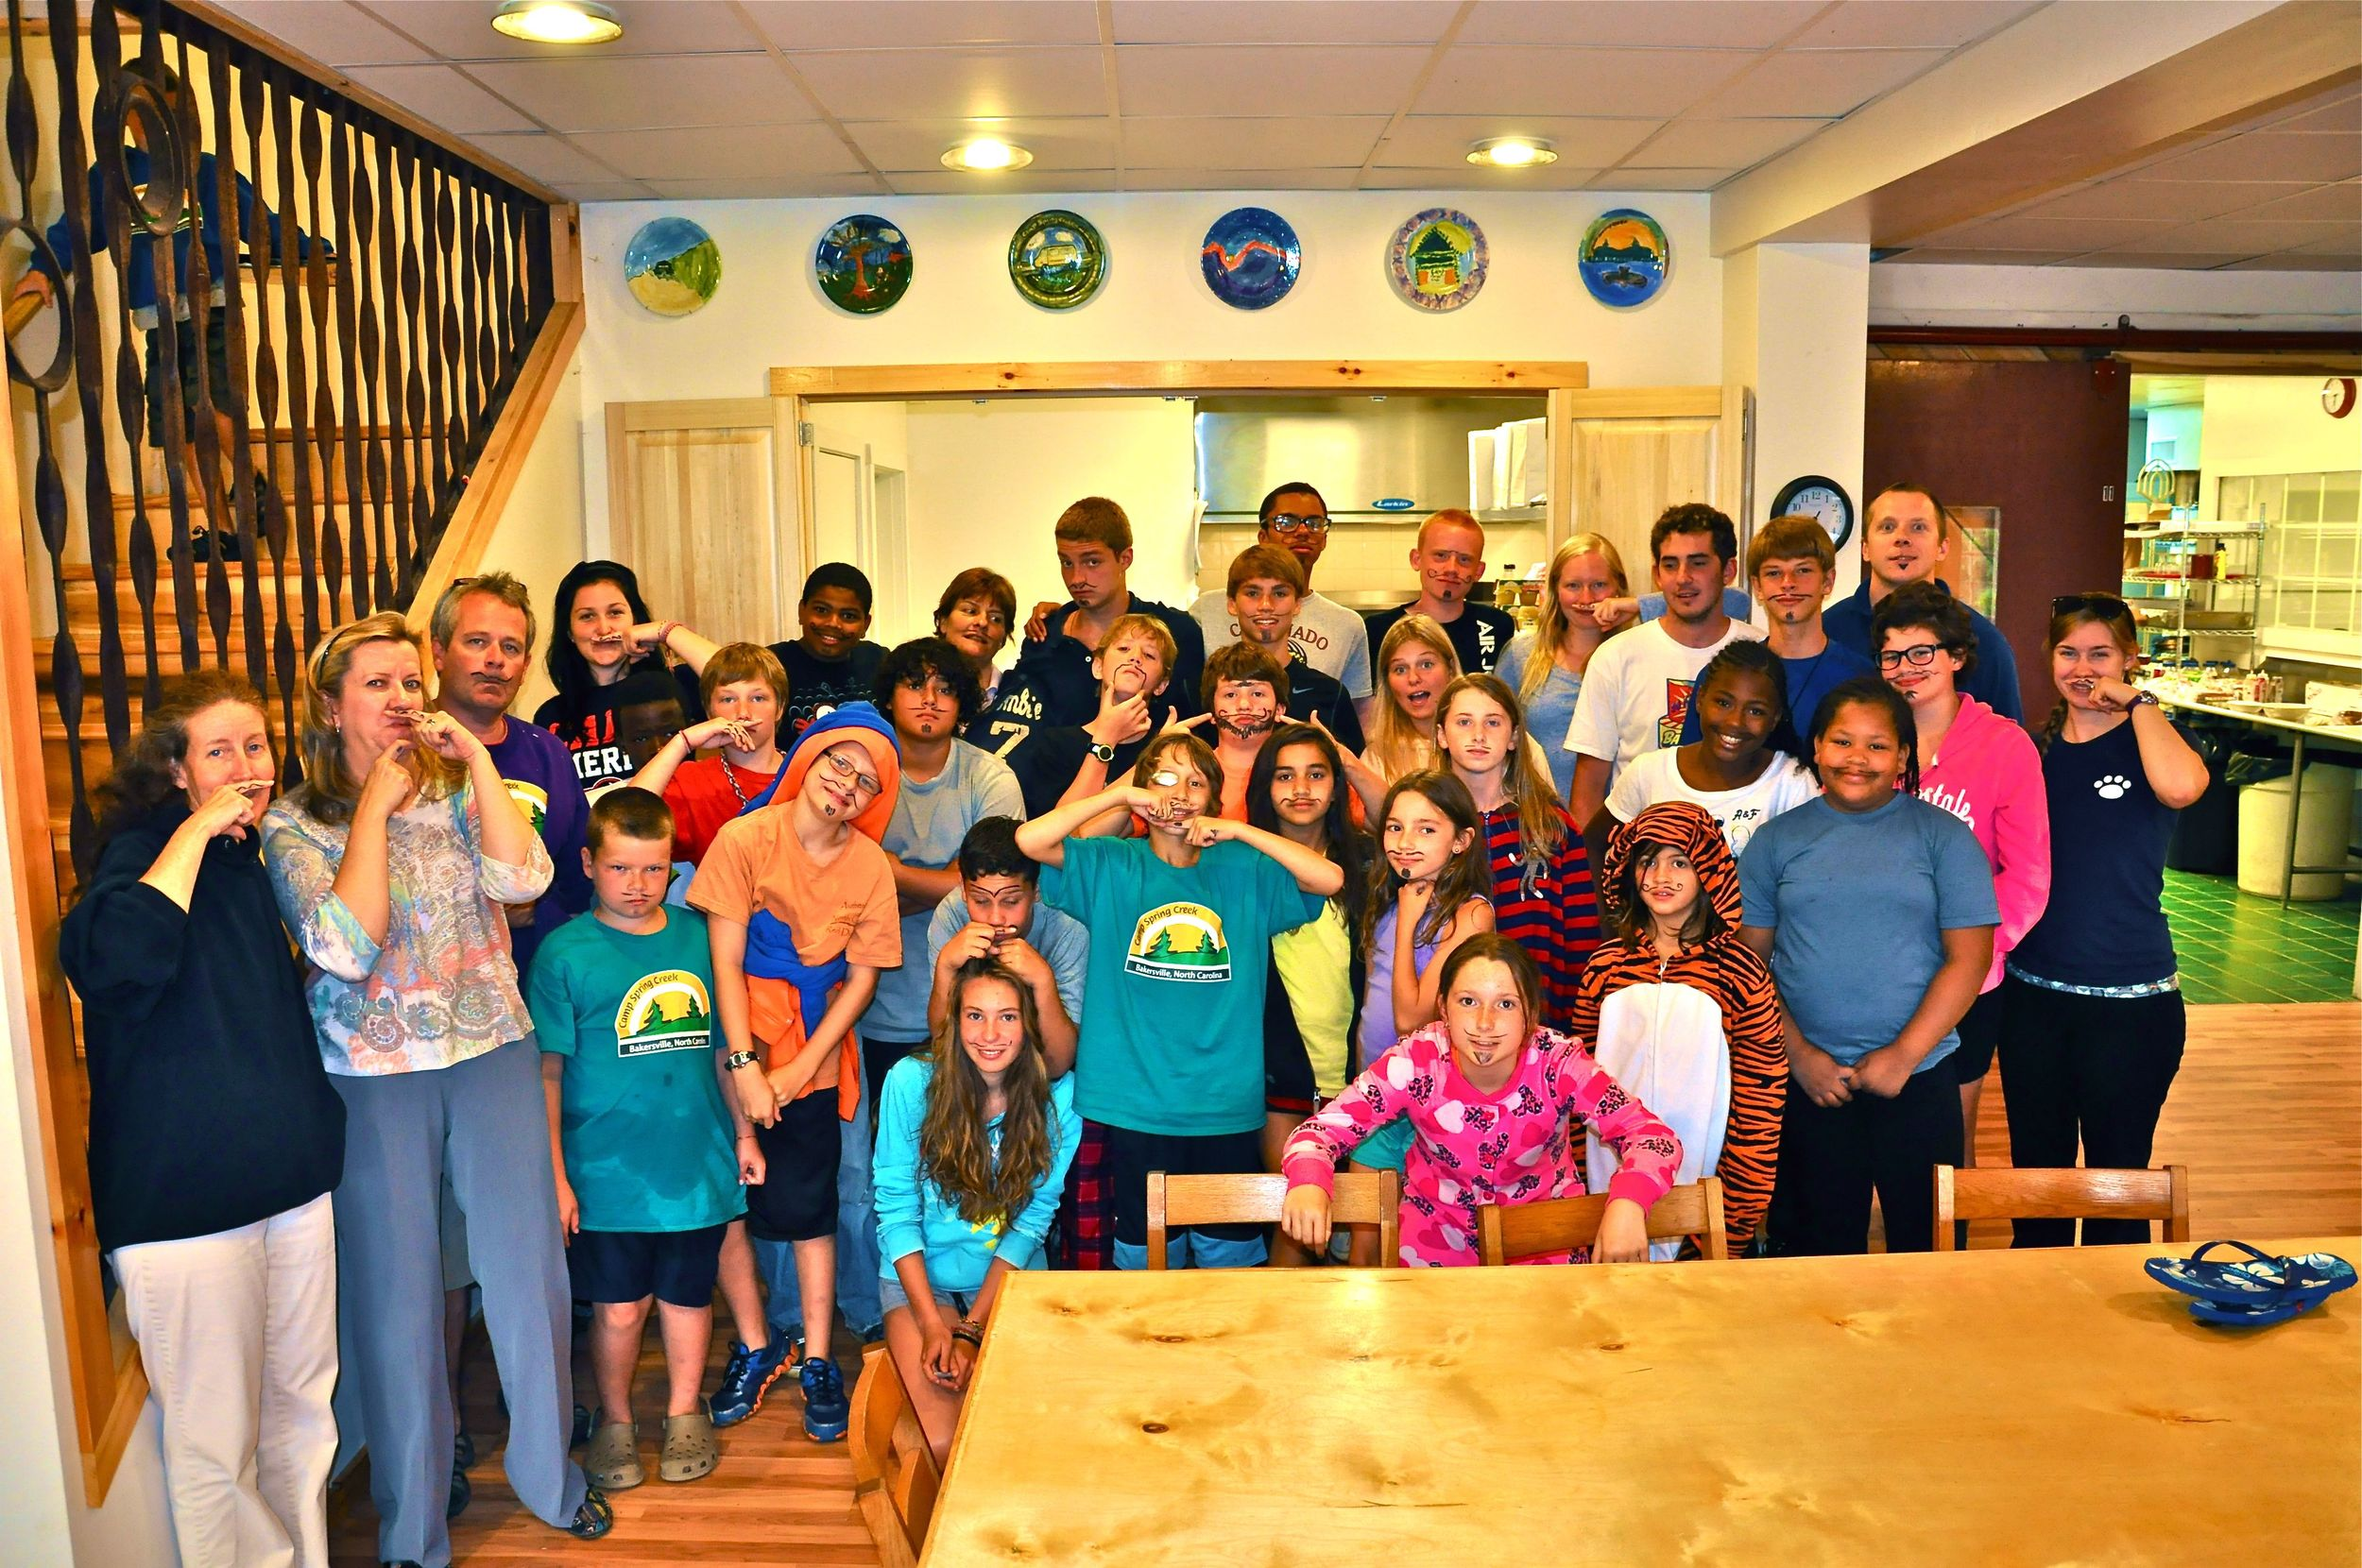 on-sunday-camp-spring-creek-celebrated-the-french-revolution-by-all-drawing-mustaches-on-their-face-and-french-style-meals-all-day-long.jpg